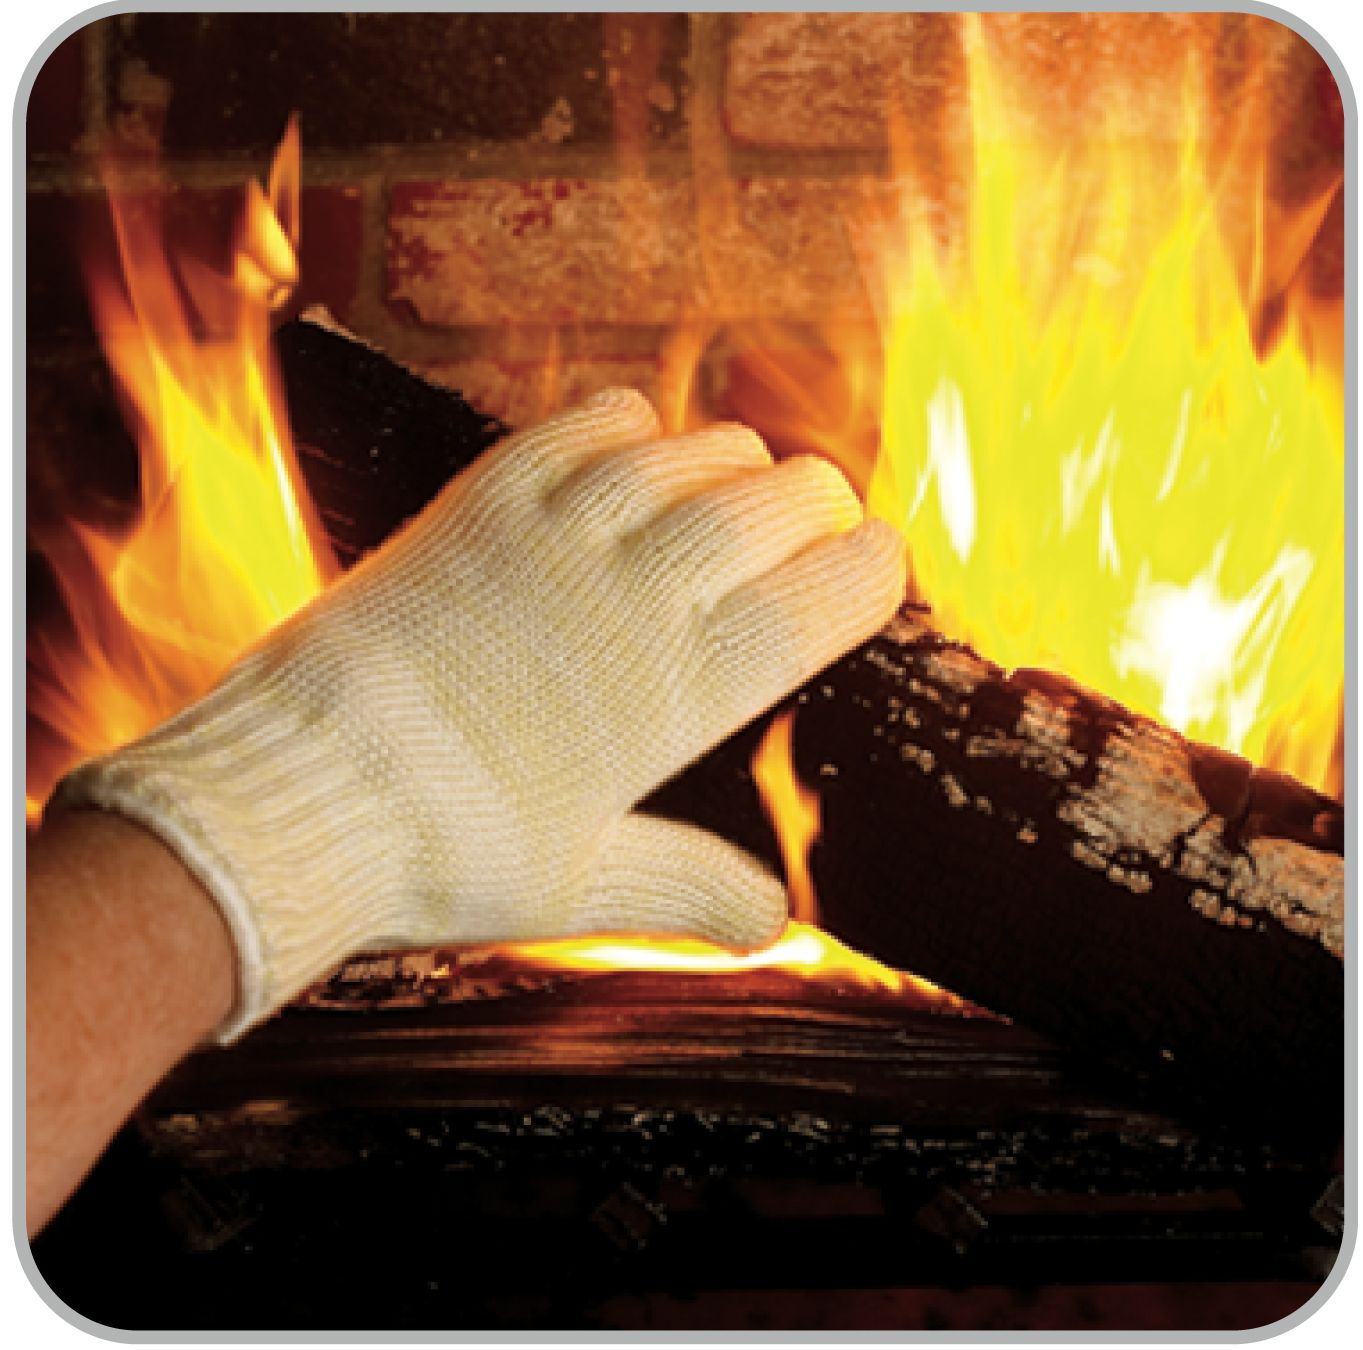 use your handyman u0027s ove glove when working with the fireplace use